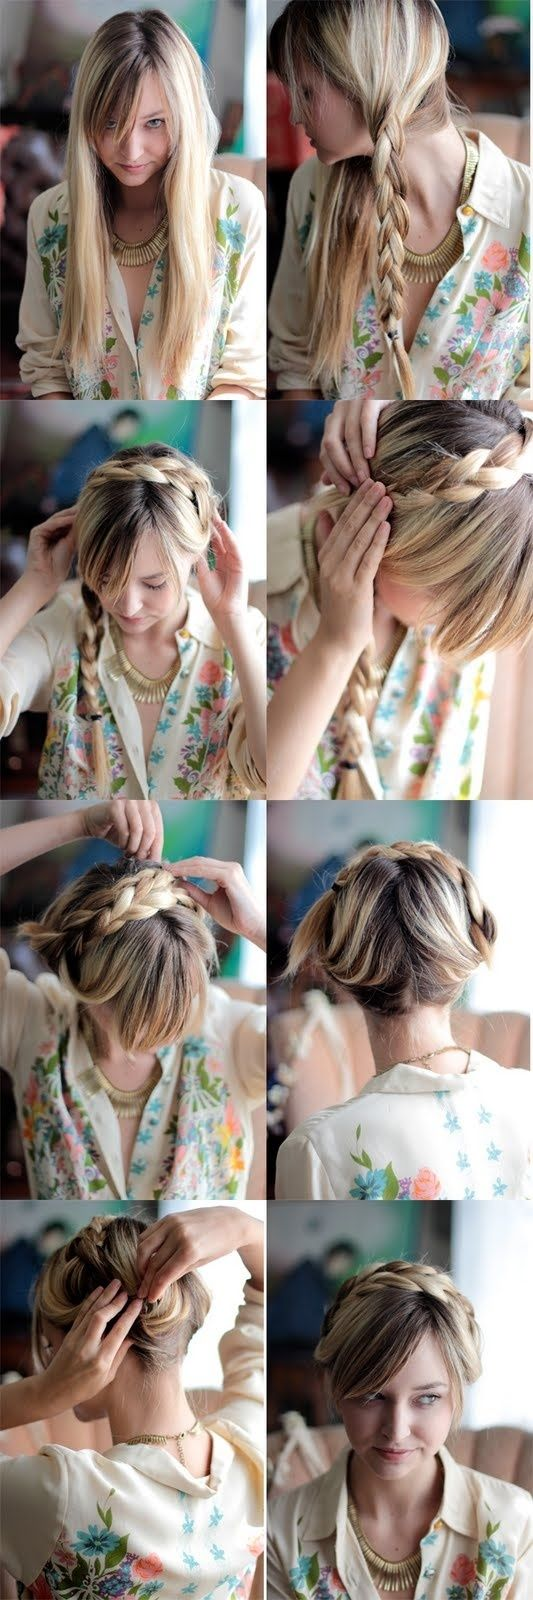 Best Hairstyles Images On Pinterest Braid Hair Styles - Diy hairstyle knotted milkmaid braid